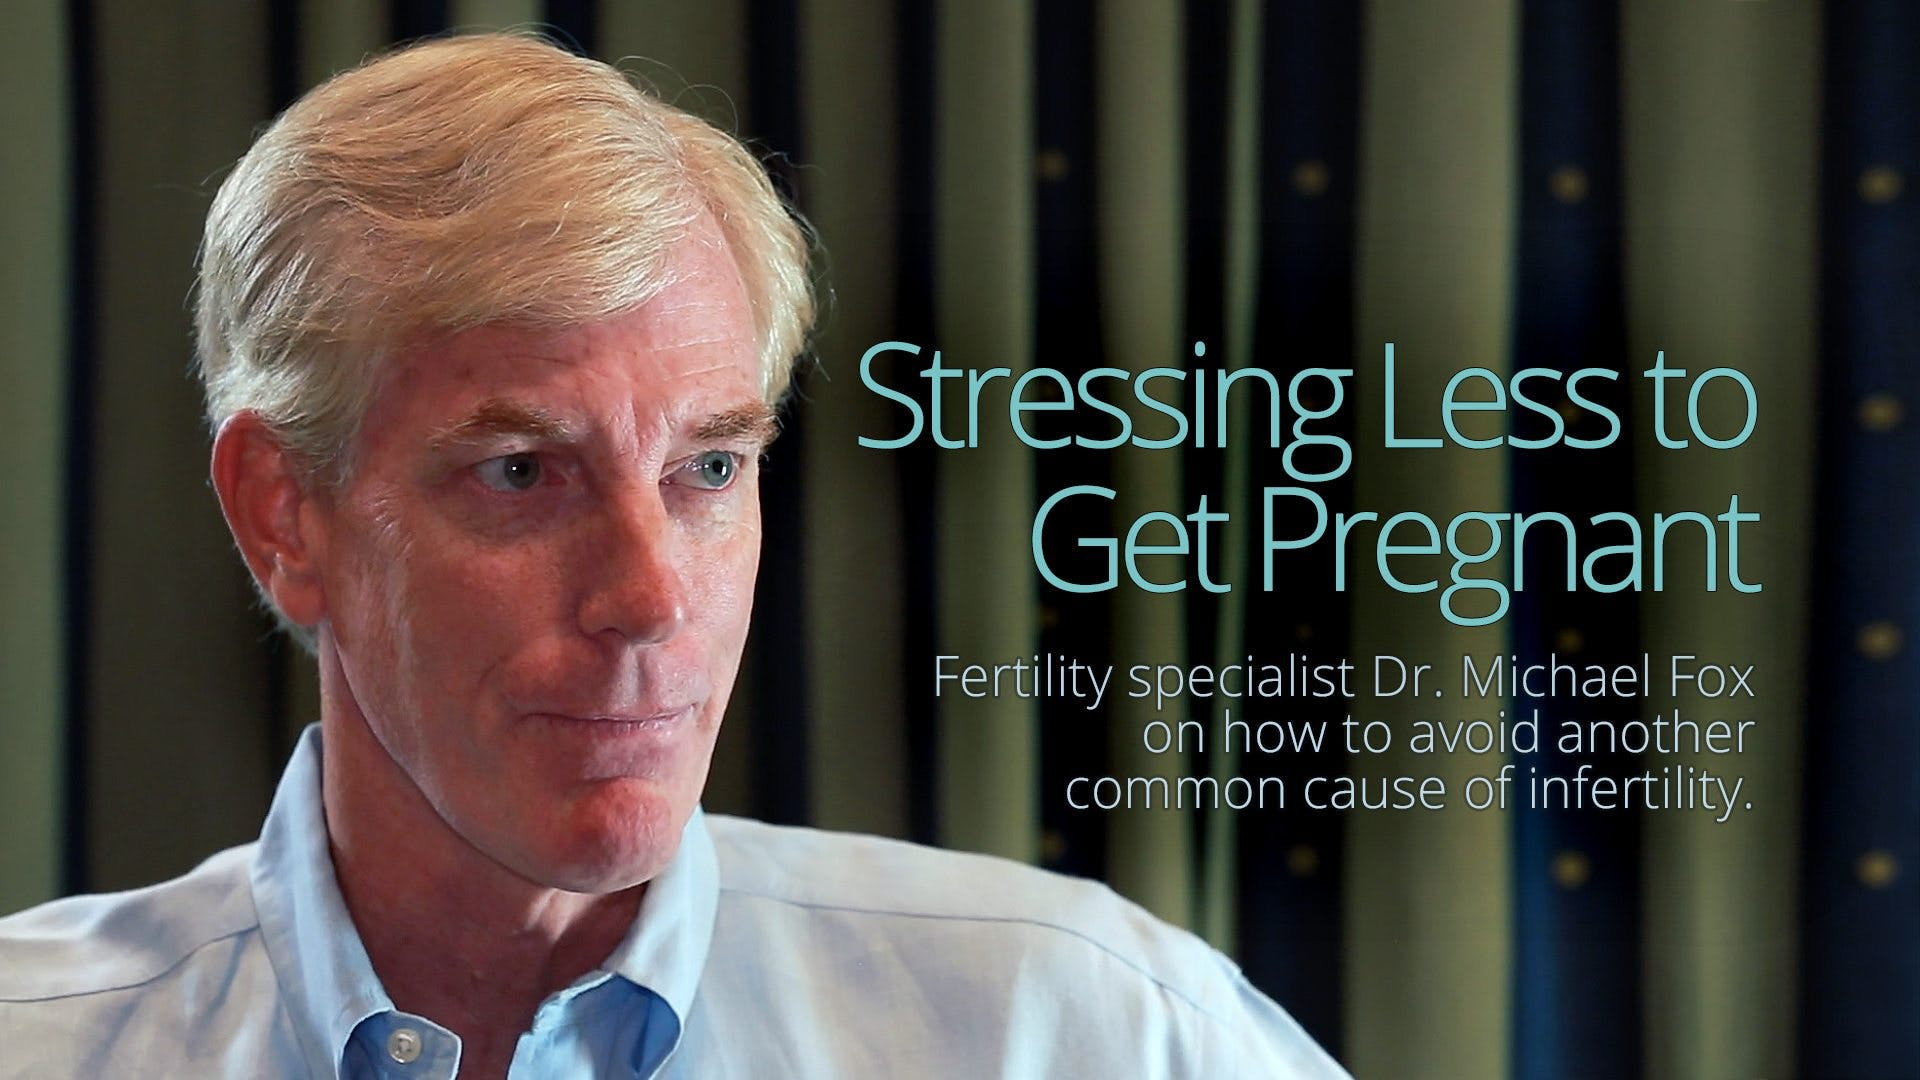 Stressing Less to Get Pregnant – Dr. Michael Fox